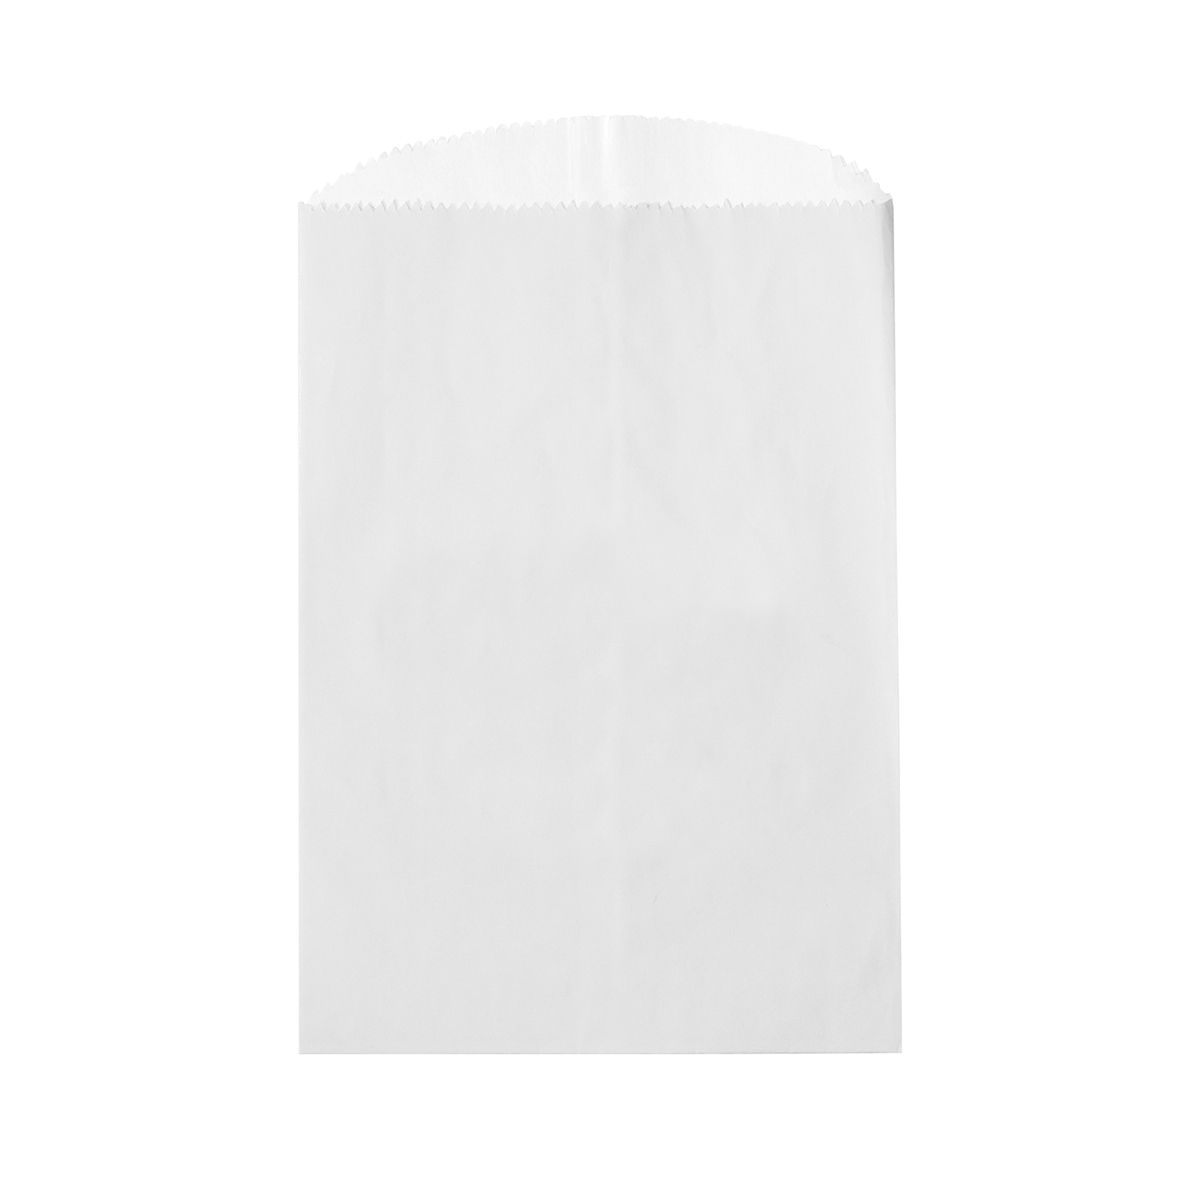 """White Unlined Paper Gourmet Cookie, Candy, & Nut Bag (4 3/4""""x6 3/4"""")"""